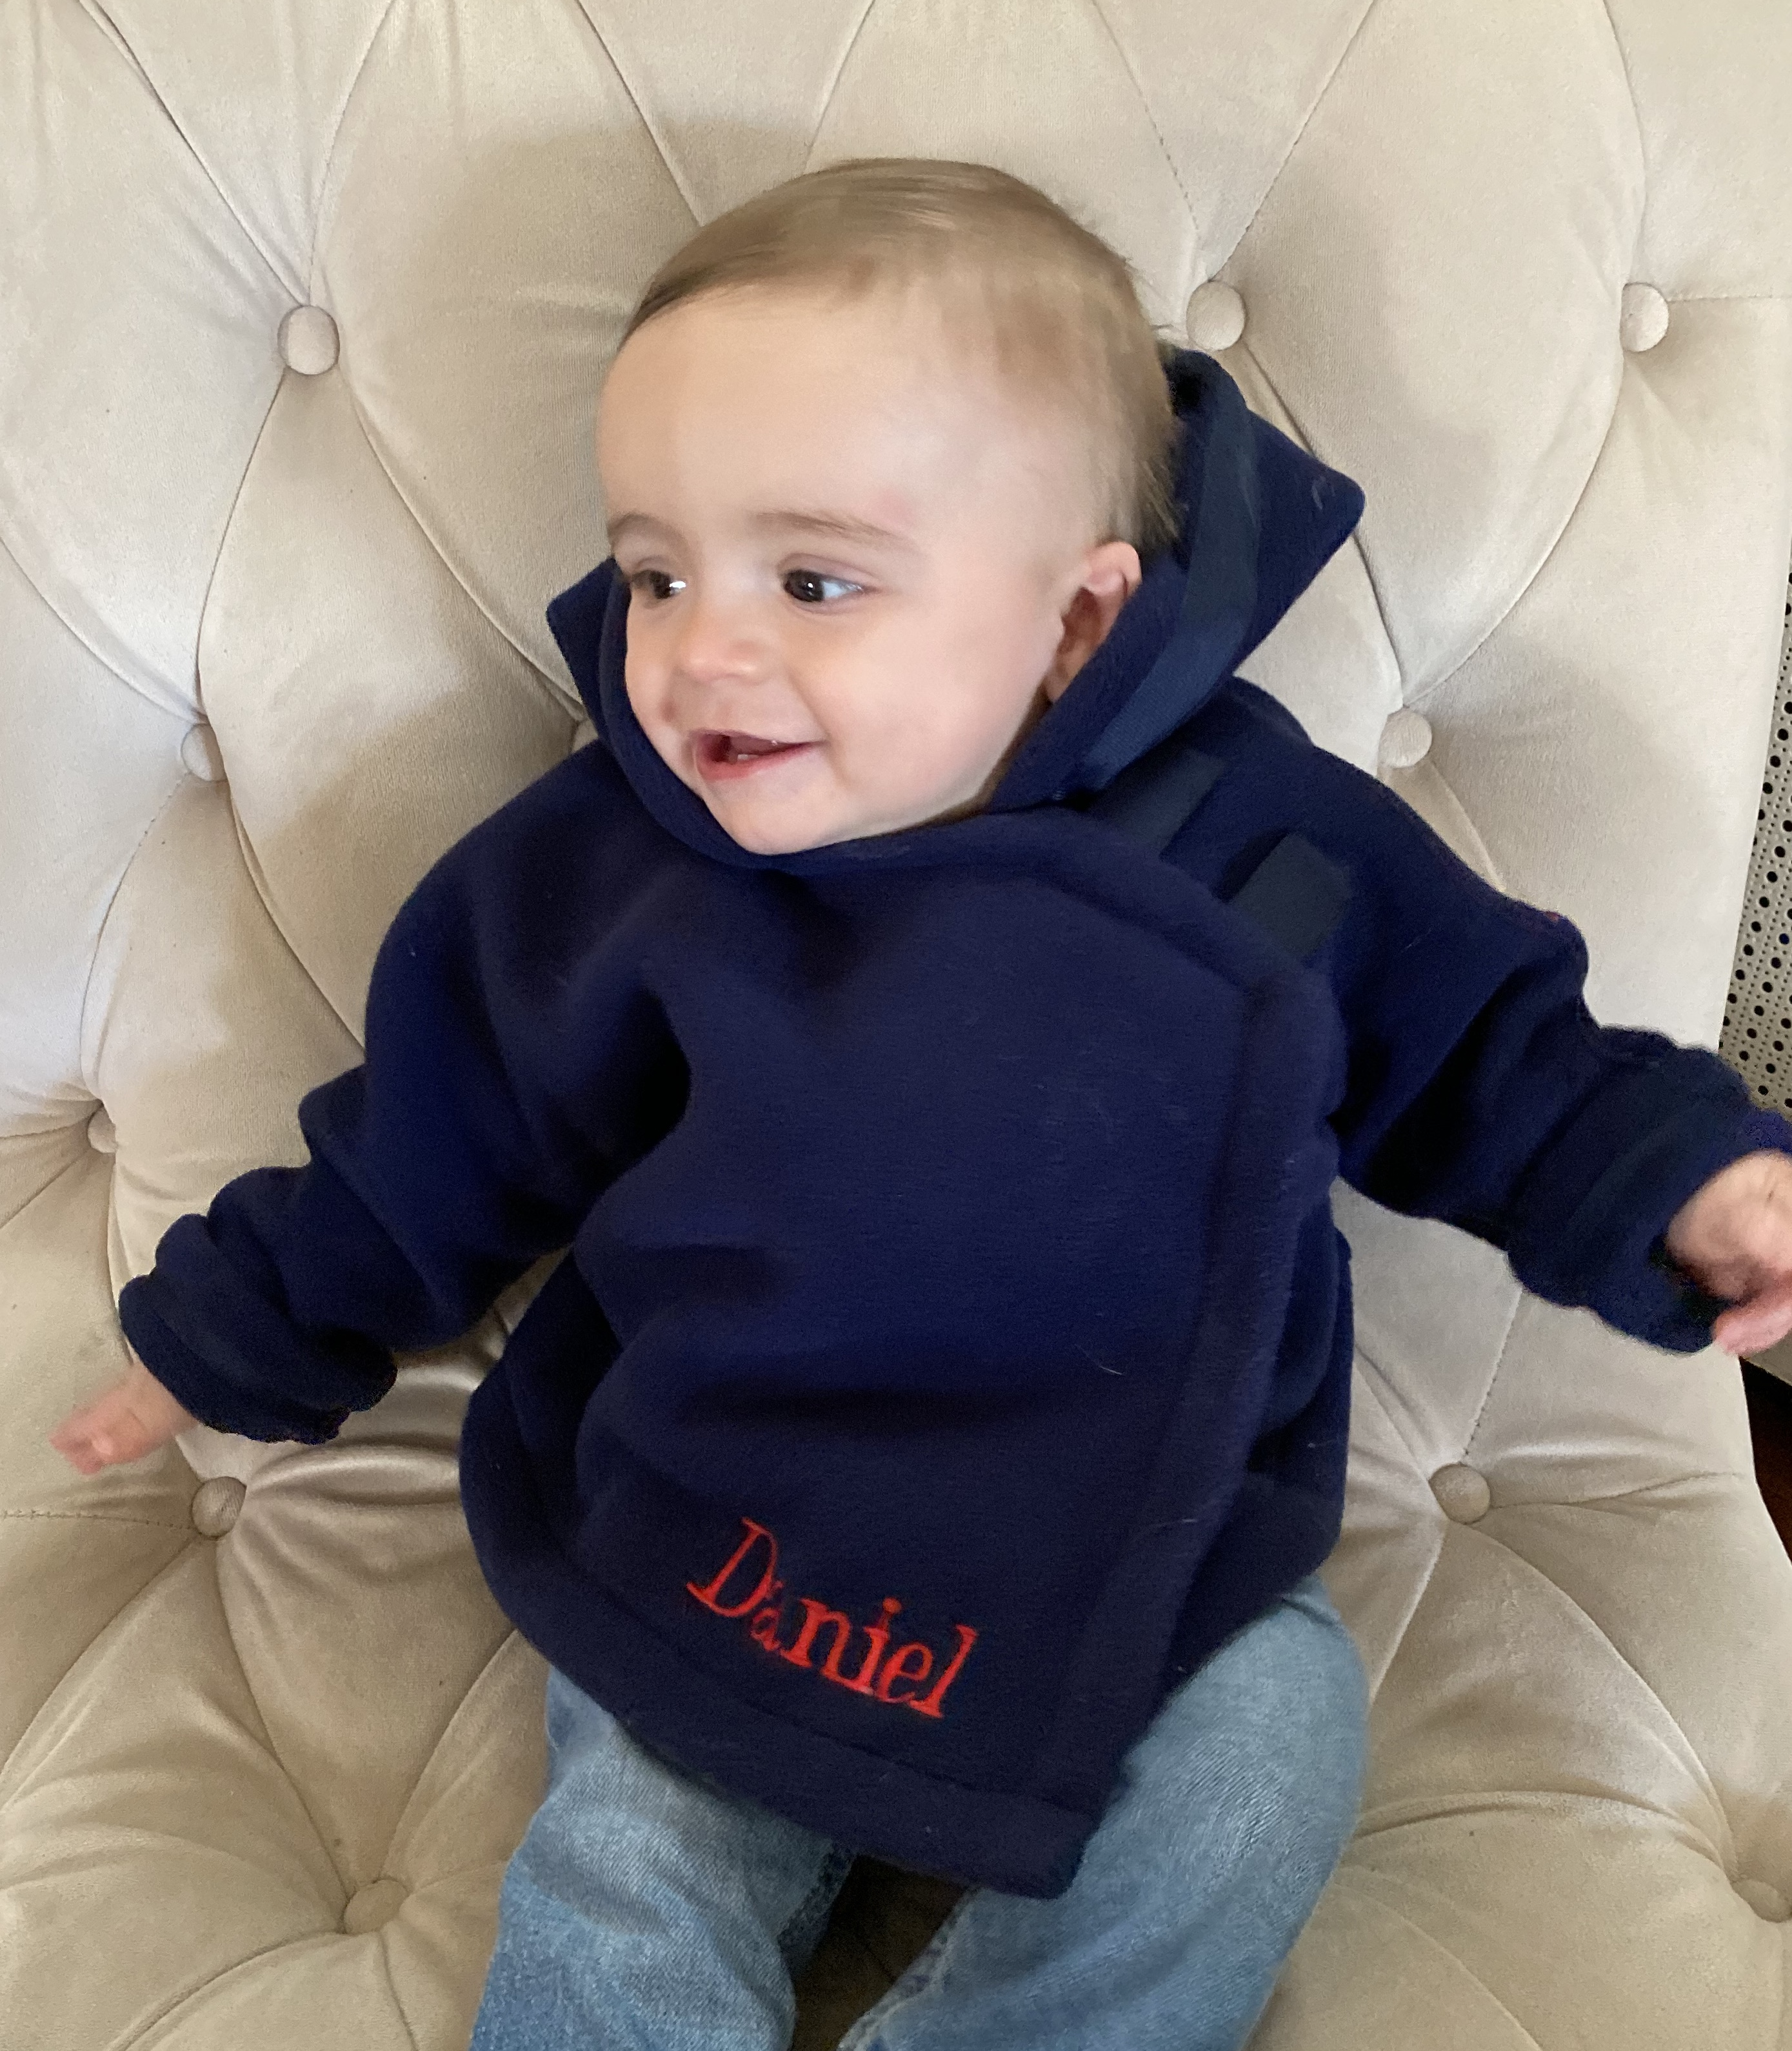 Daniel is staying warm and cozy in his navy widgeon jacket.